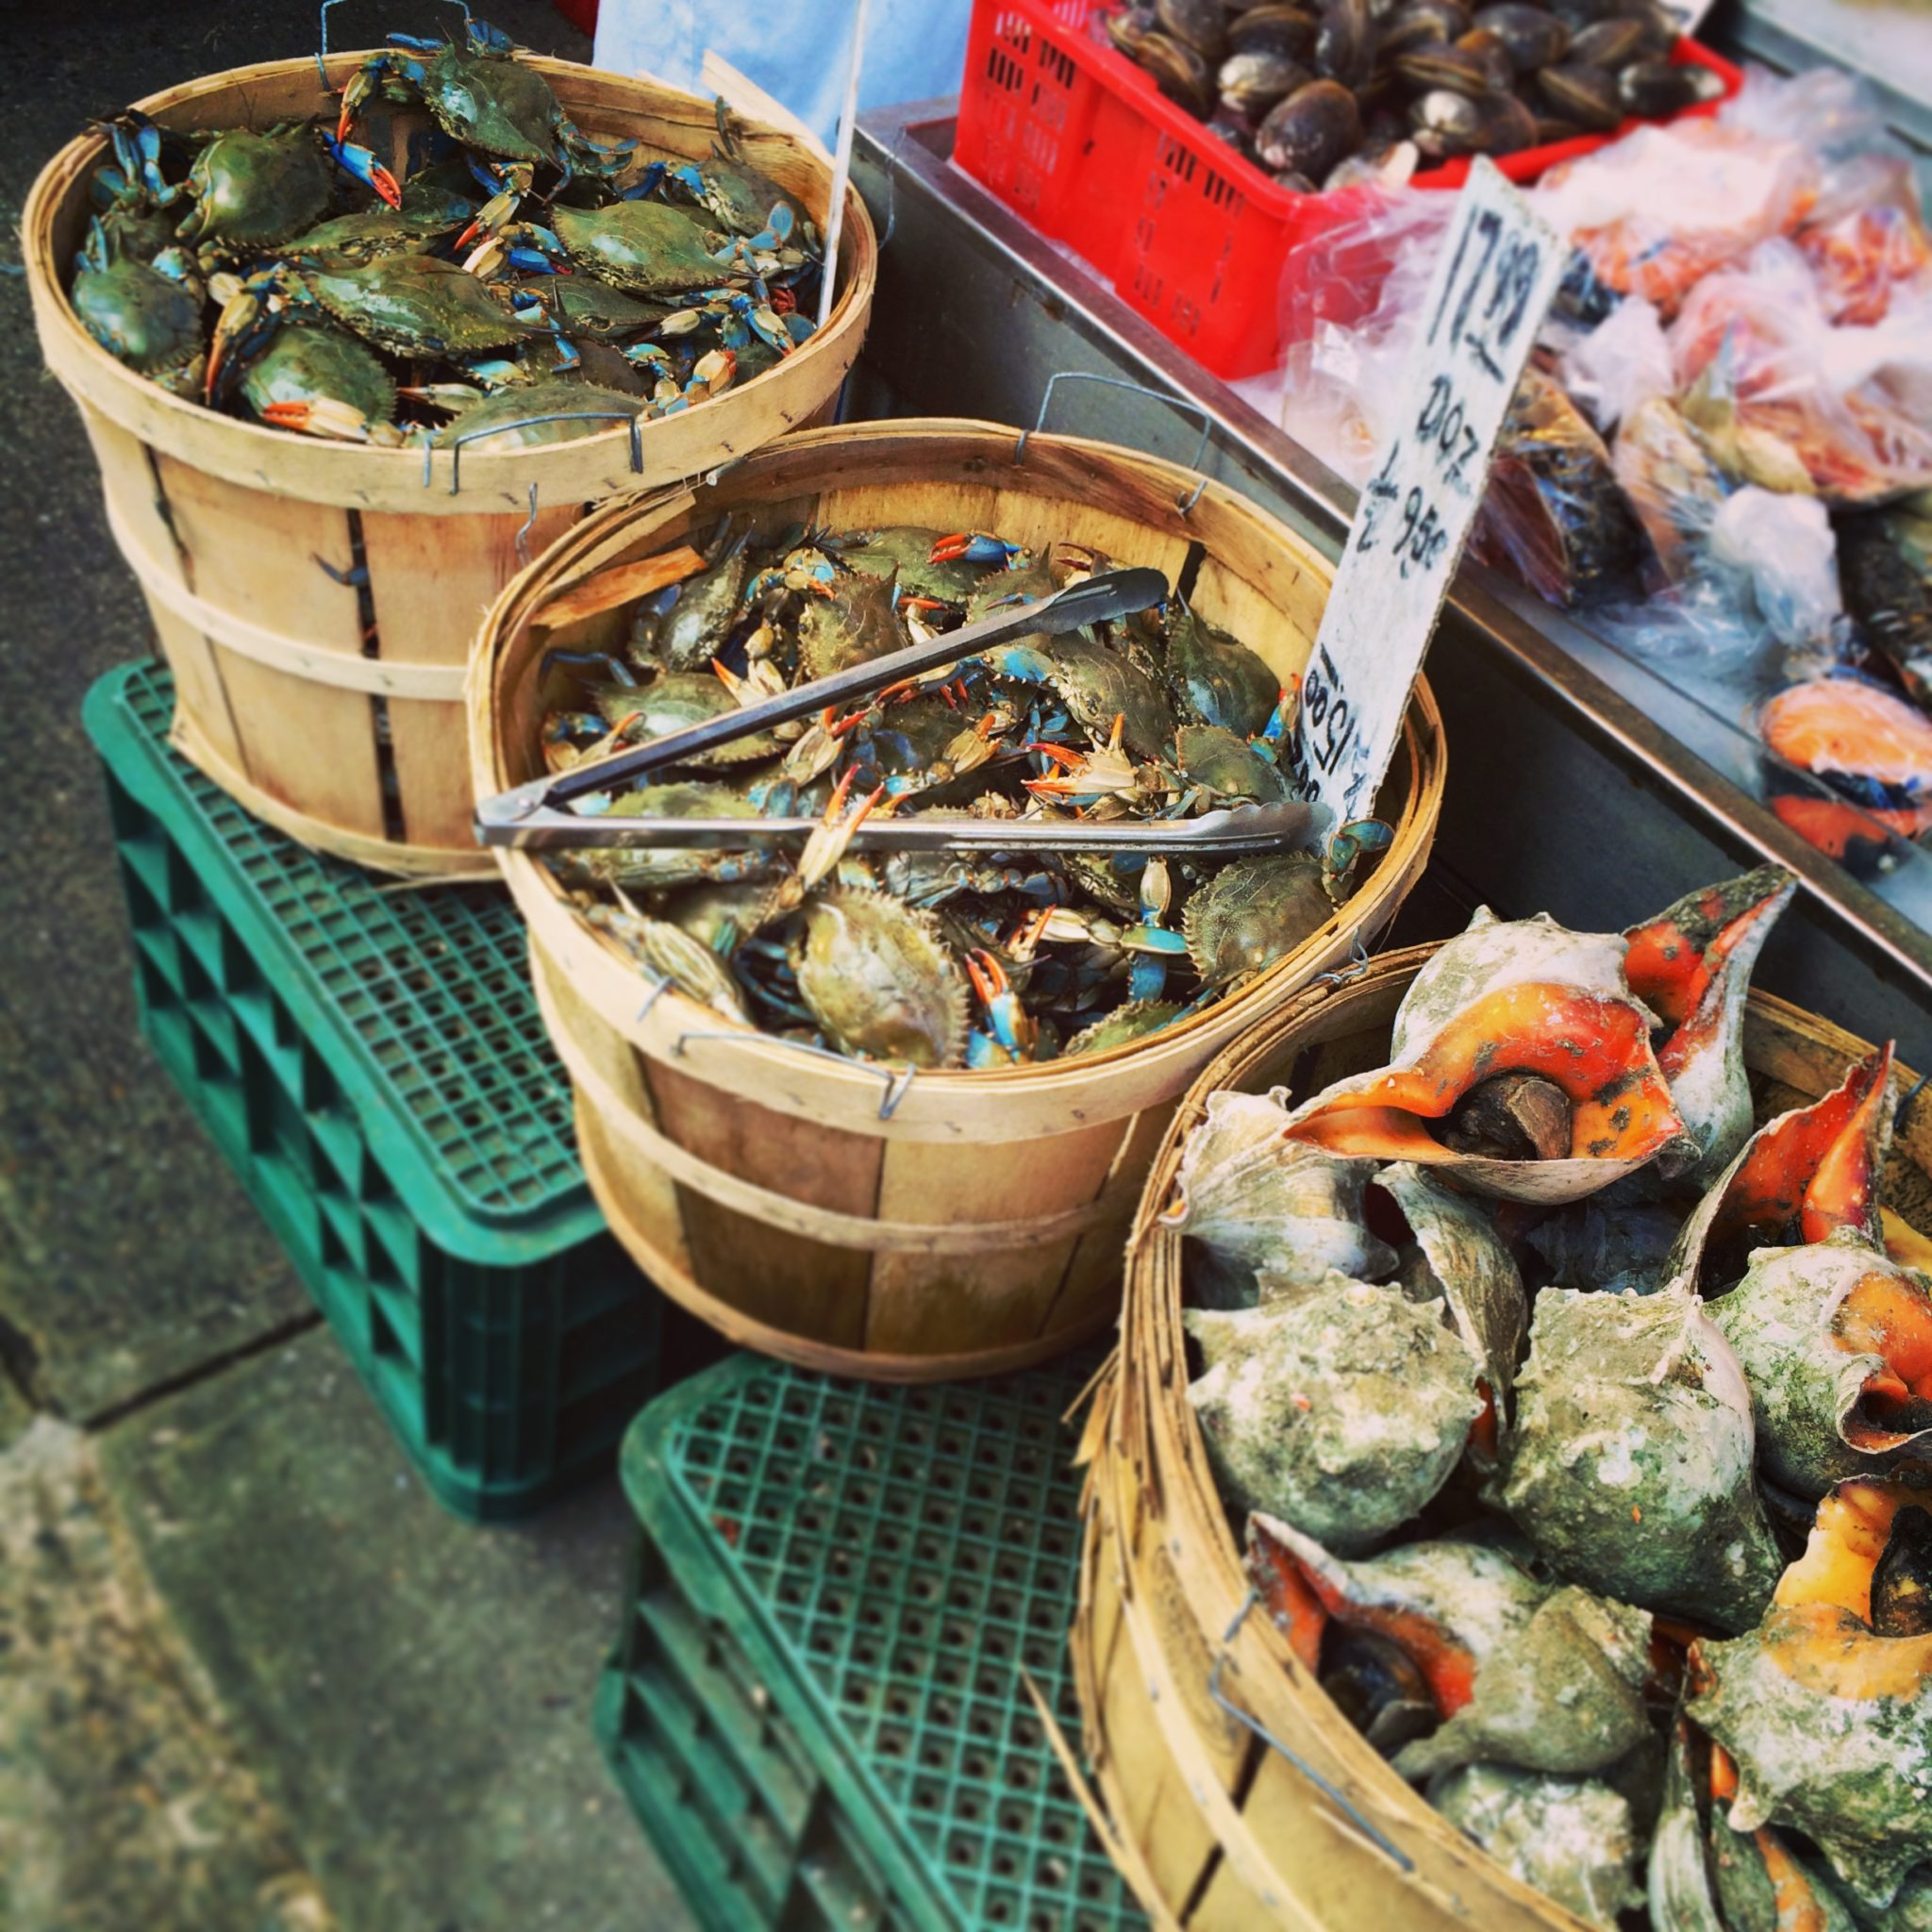 Fresh seafood in Chinatown.